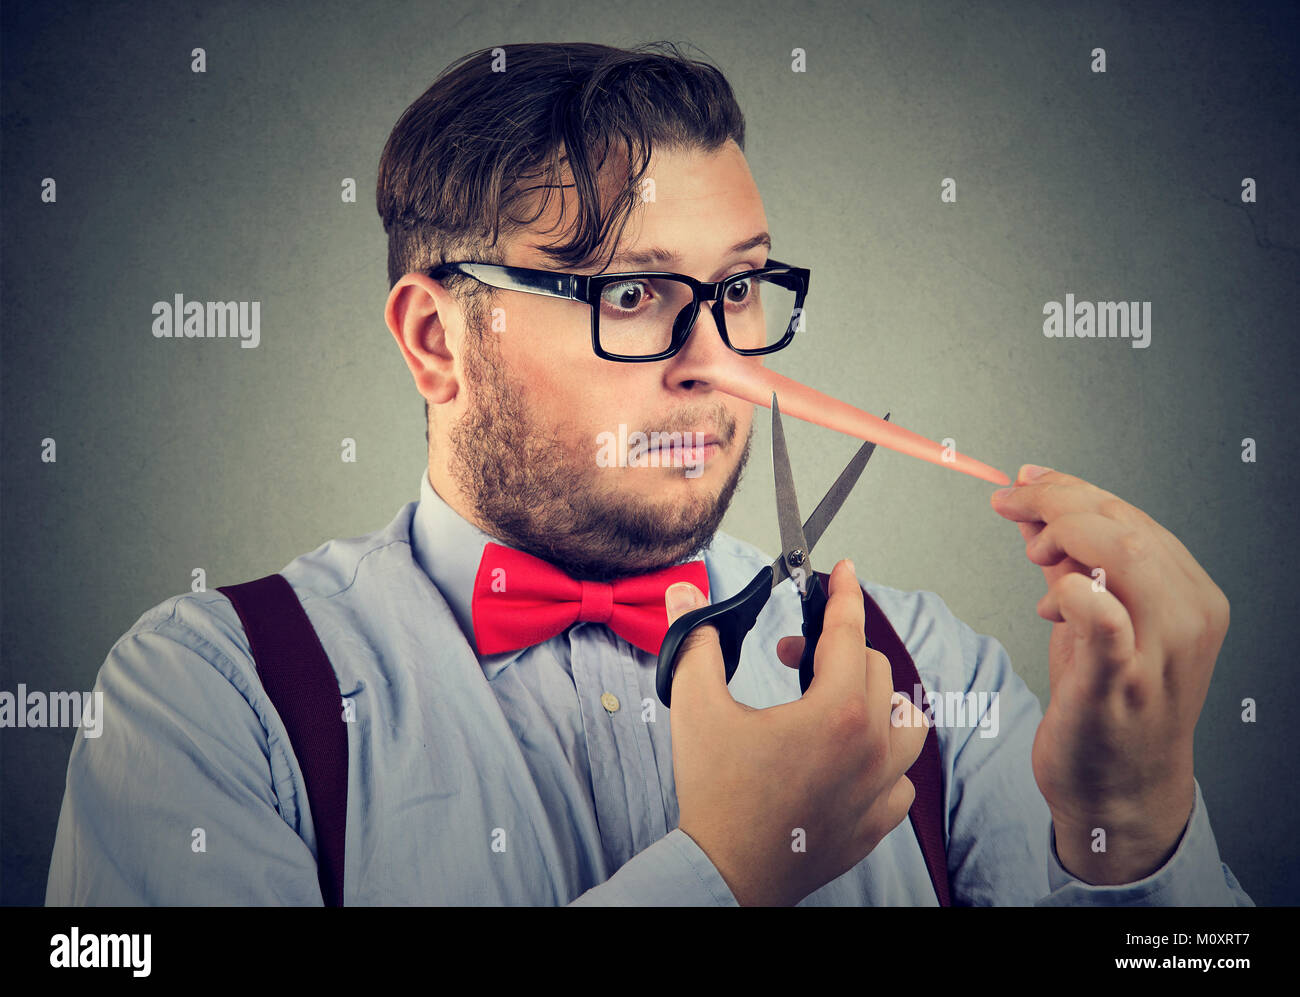 Chubby man having long nose of liar trying to cut it off and change situation. - Stock Image